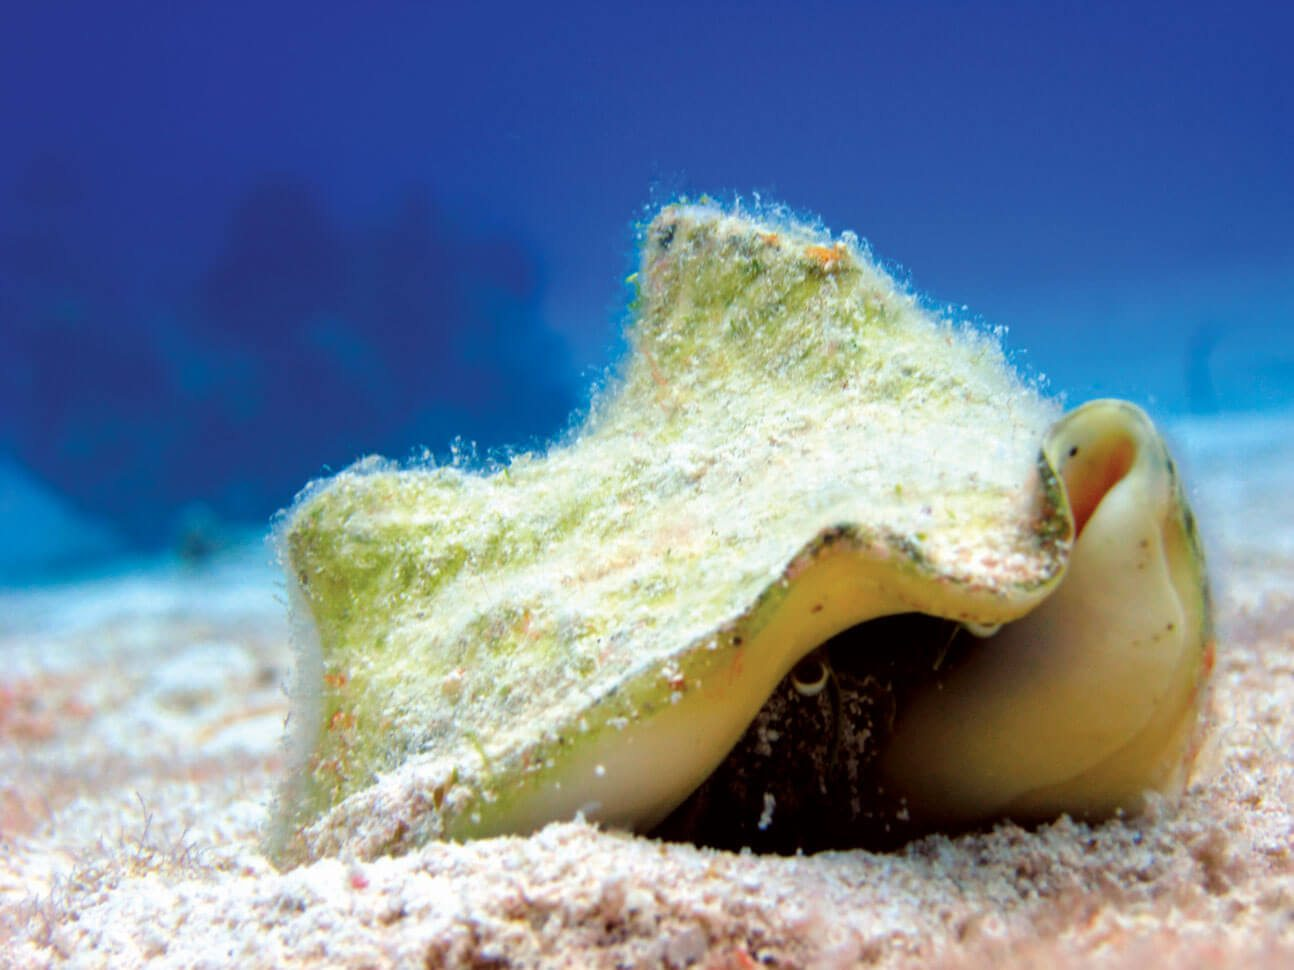 Spectacular Diving in the Turks & Caicos: Queen Conch, Photo by Stephanie Wallwork